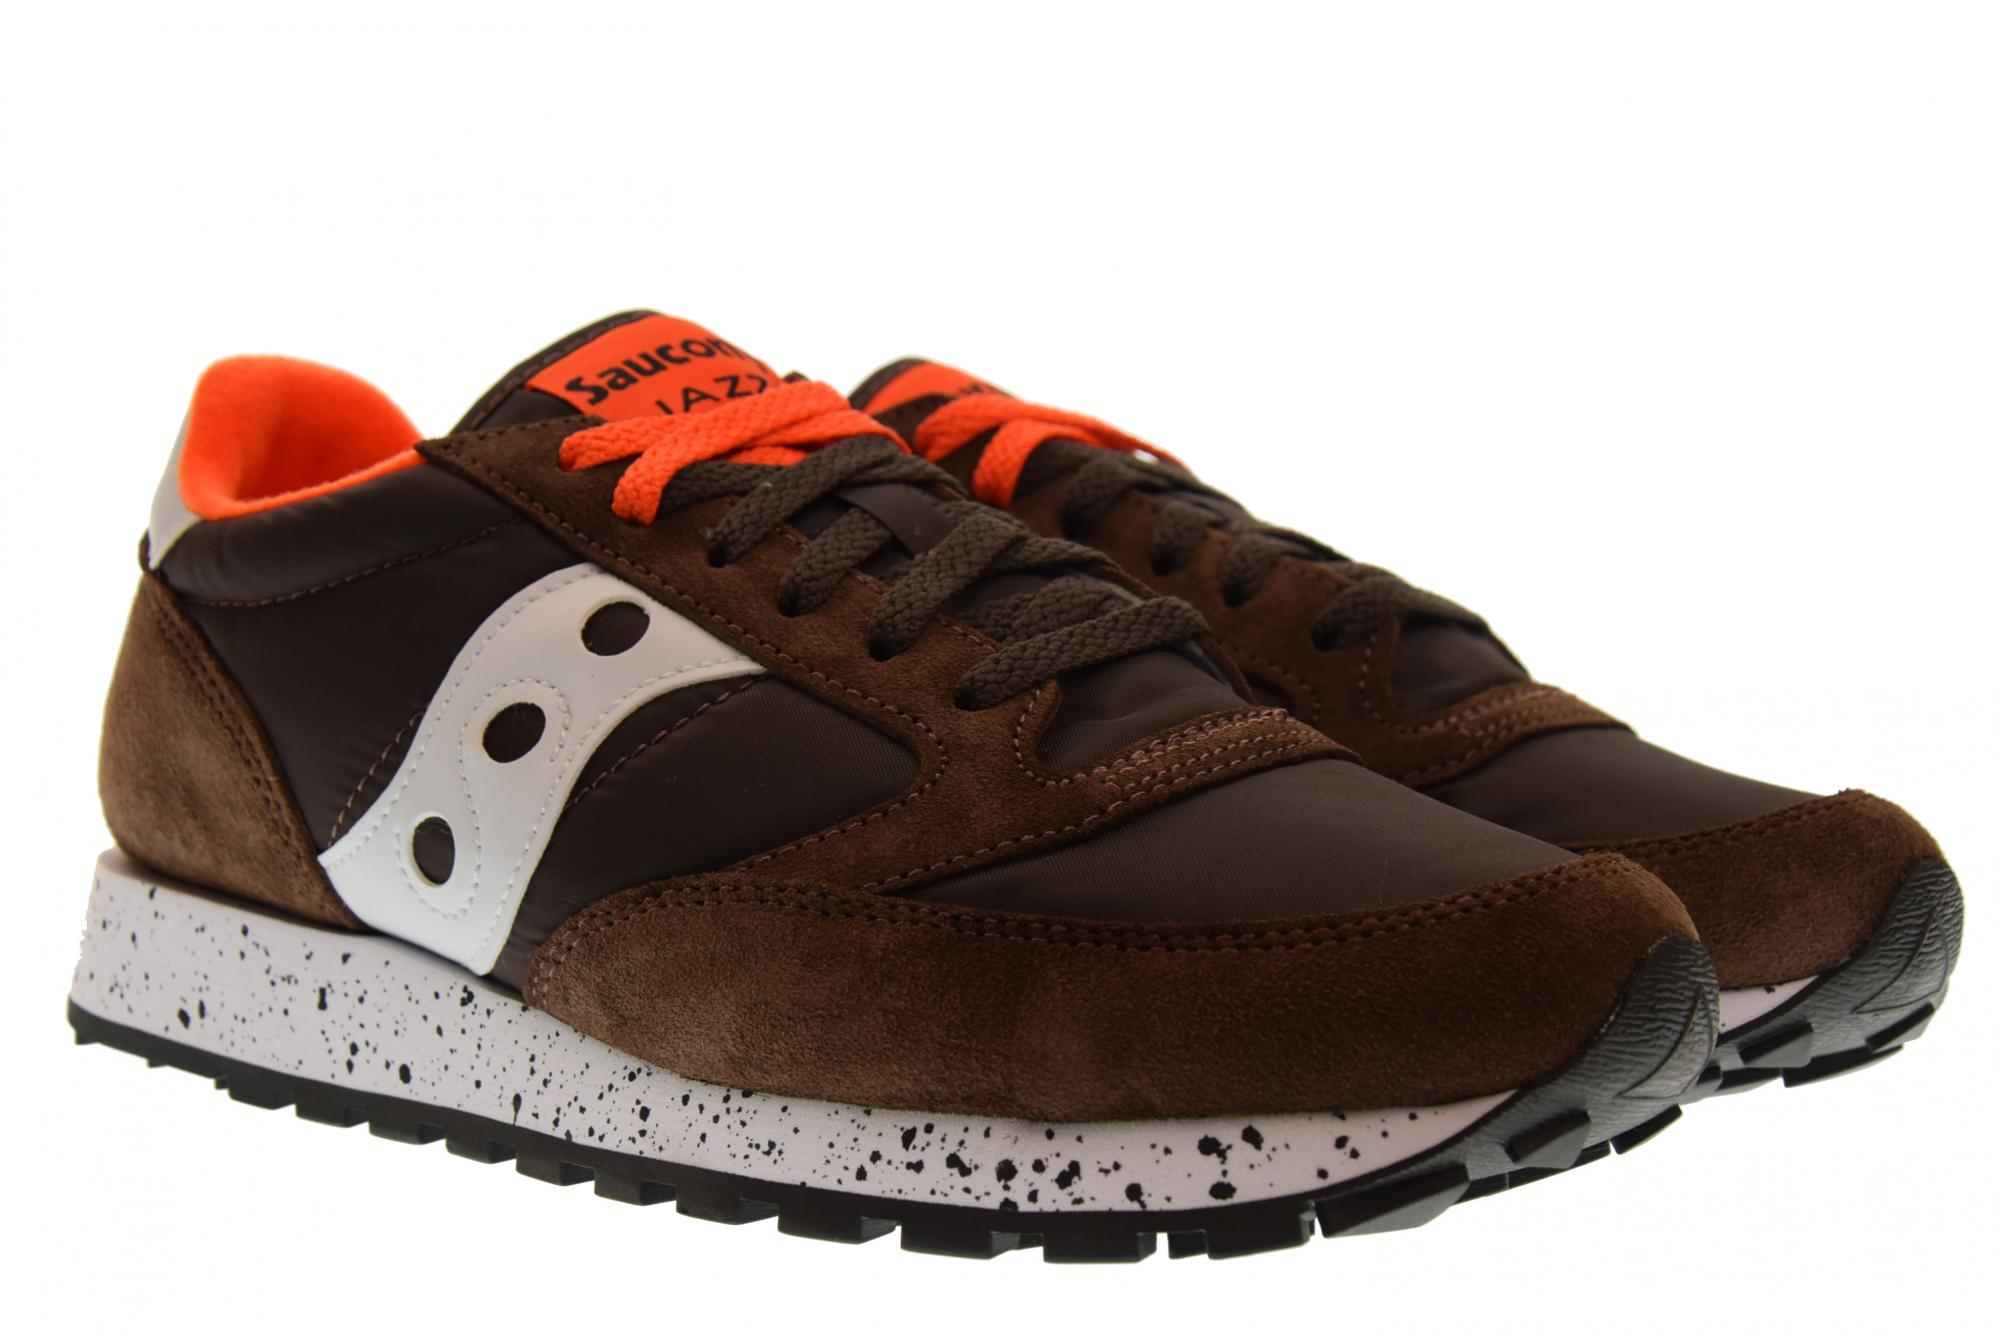 Saucony scarpe uomo sneakers A18 basse S2044-458 JAZZ ORIGINAL A18 sneakers 1190d8